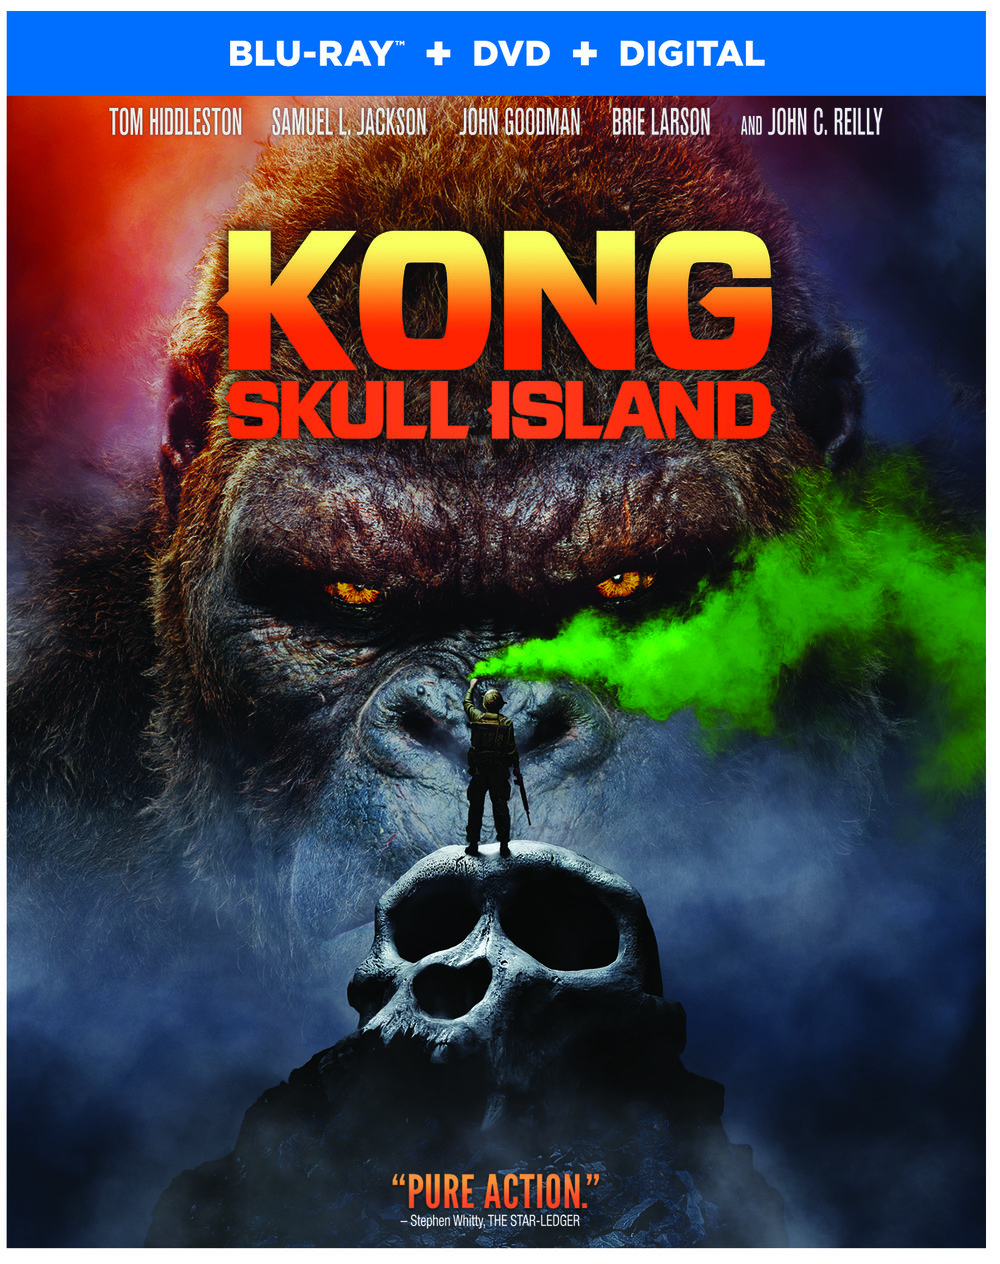 Kong skull island soundtrack on cd - Own Kong Skull Island On Ultra Hd Blu Ray 3d Blu Ray Blu Ray And Dvd On July 18 Or Own It Early On Digital June 20